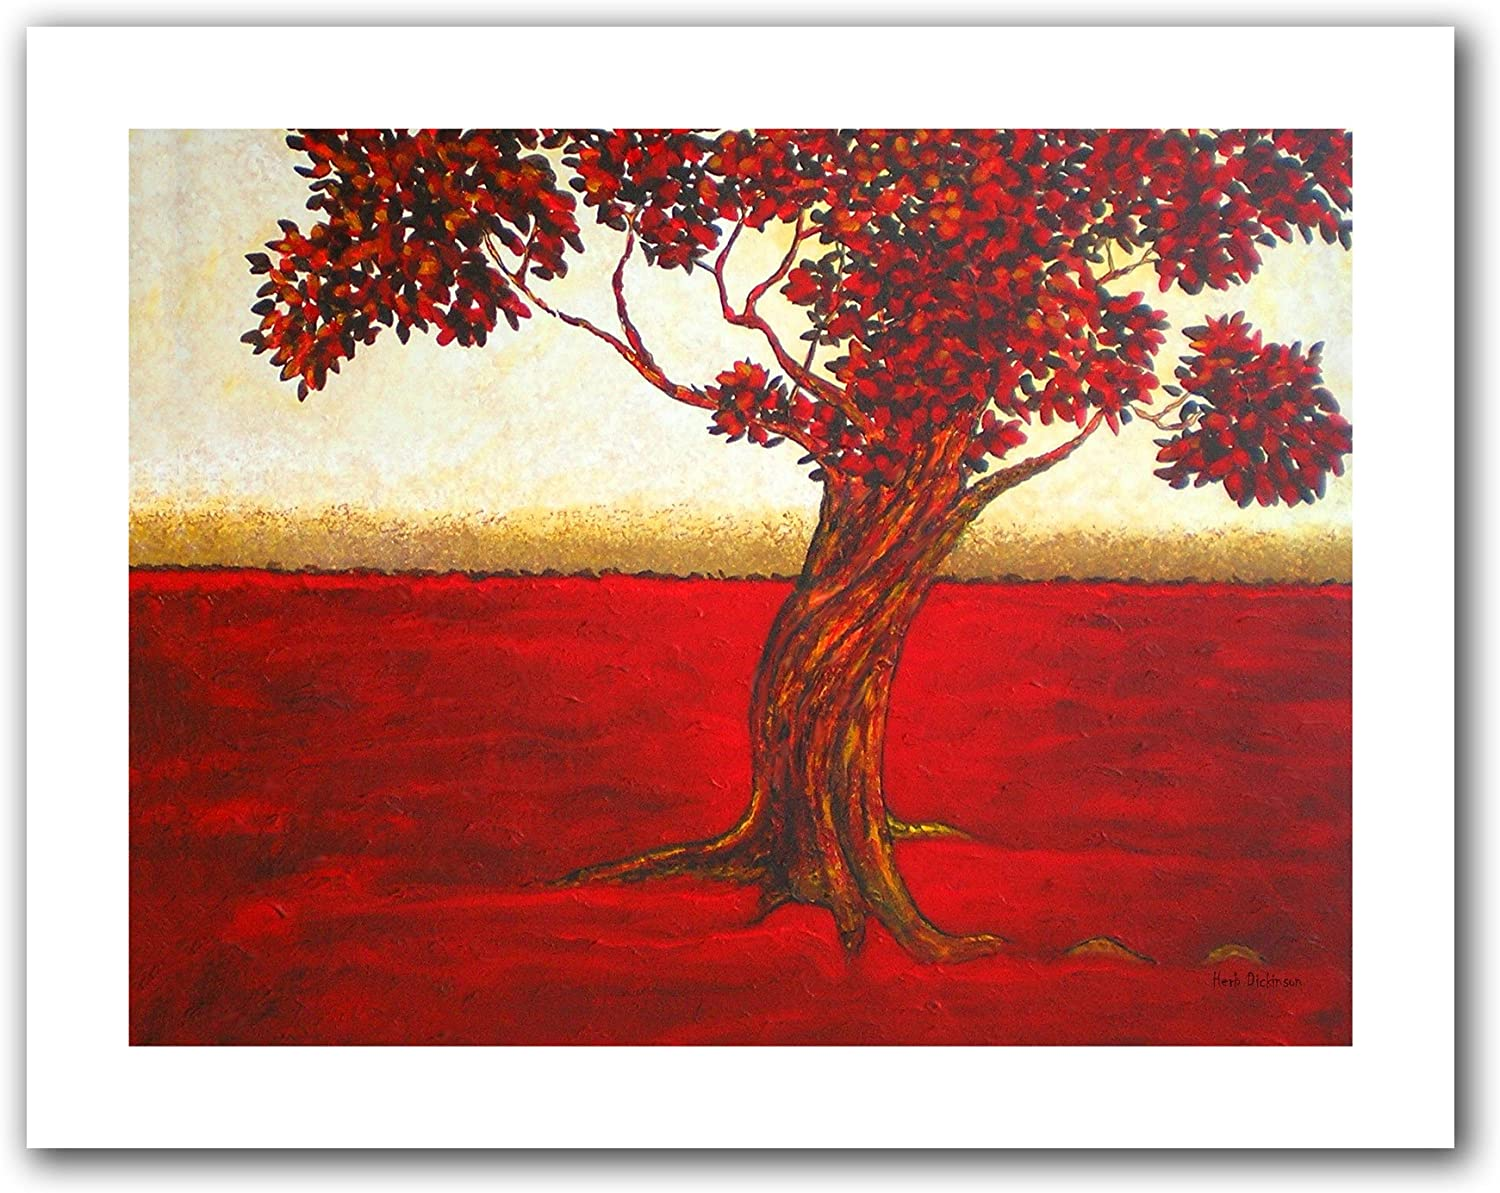 Art Wall Ethereal Tree II by Herb Dickinson Unwrapped Canvas Artwork, 18 by 22-Inch